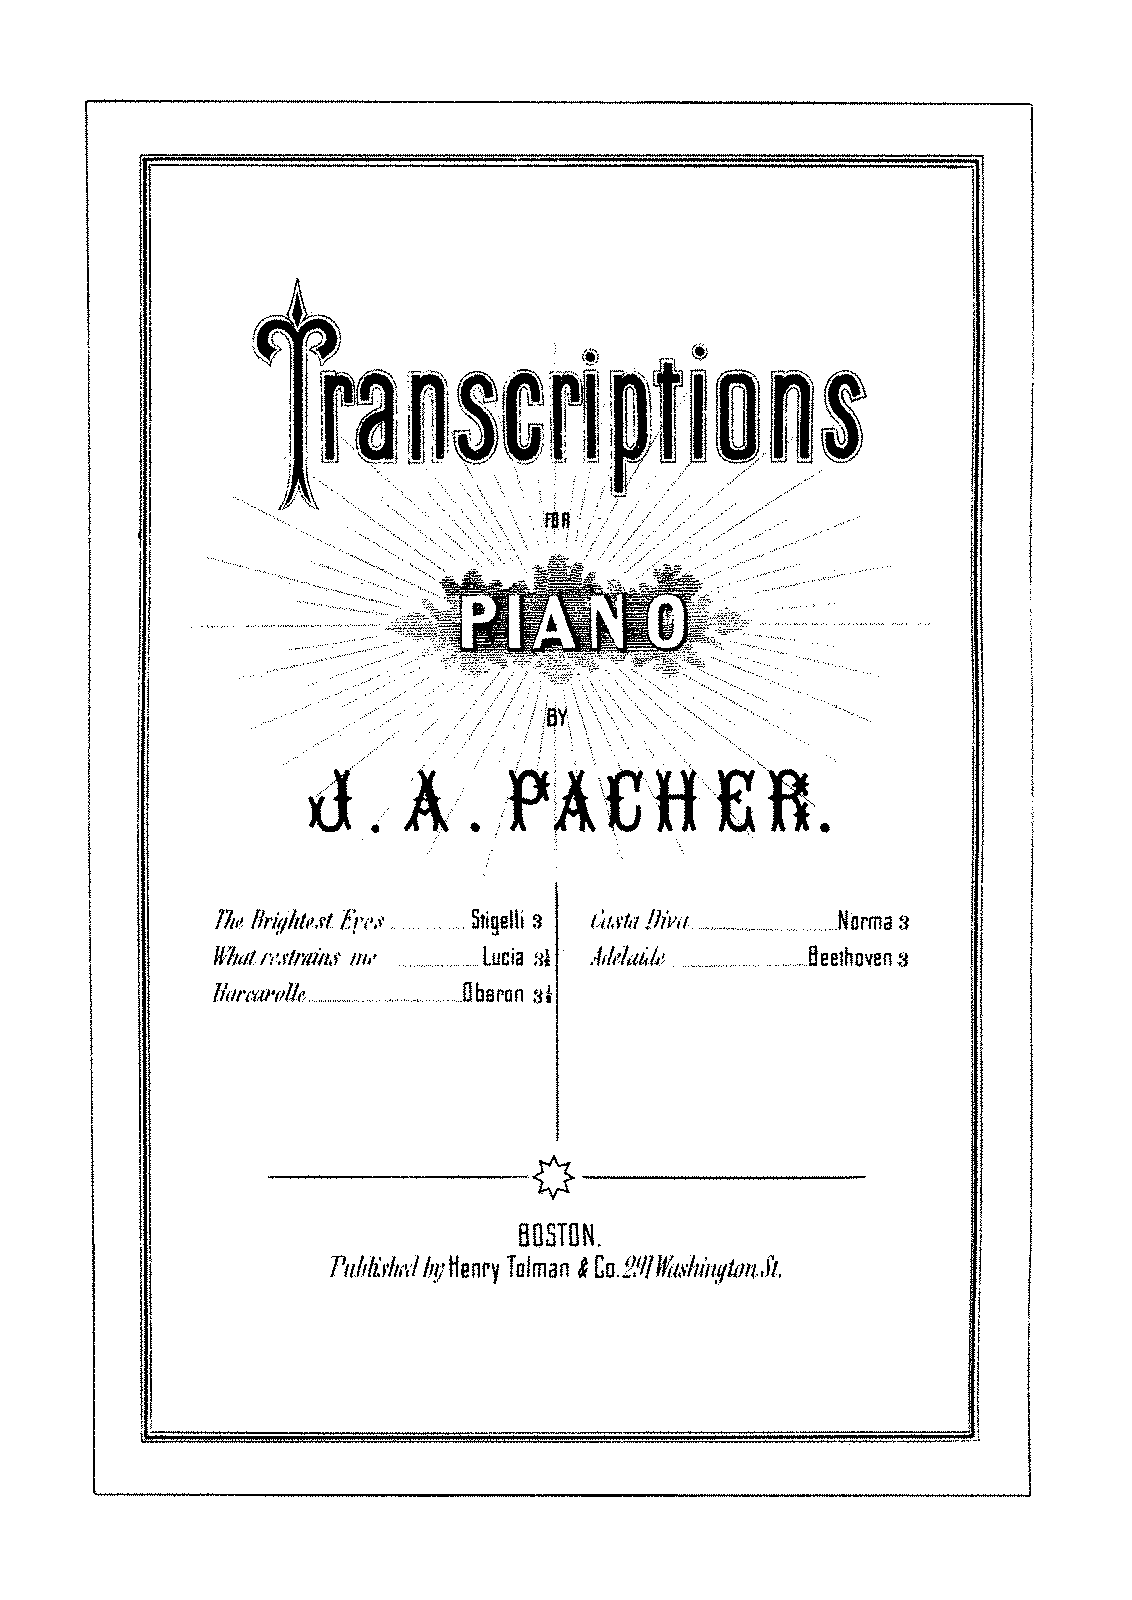 PMLP613090-Pacher - 36 Melodienschatz - Transcription - Stigelli - The Brightest Eyes Op.36 LOC.pdf